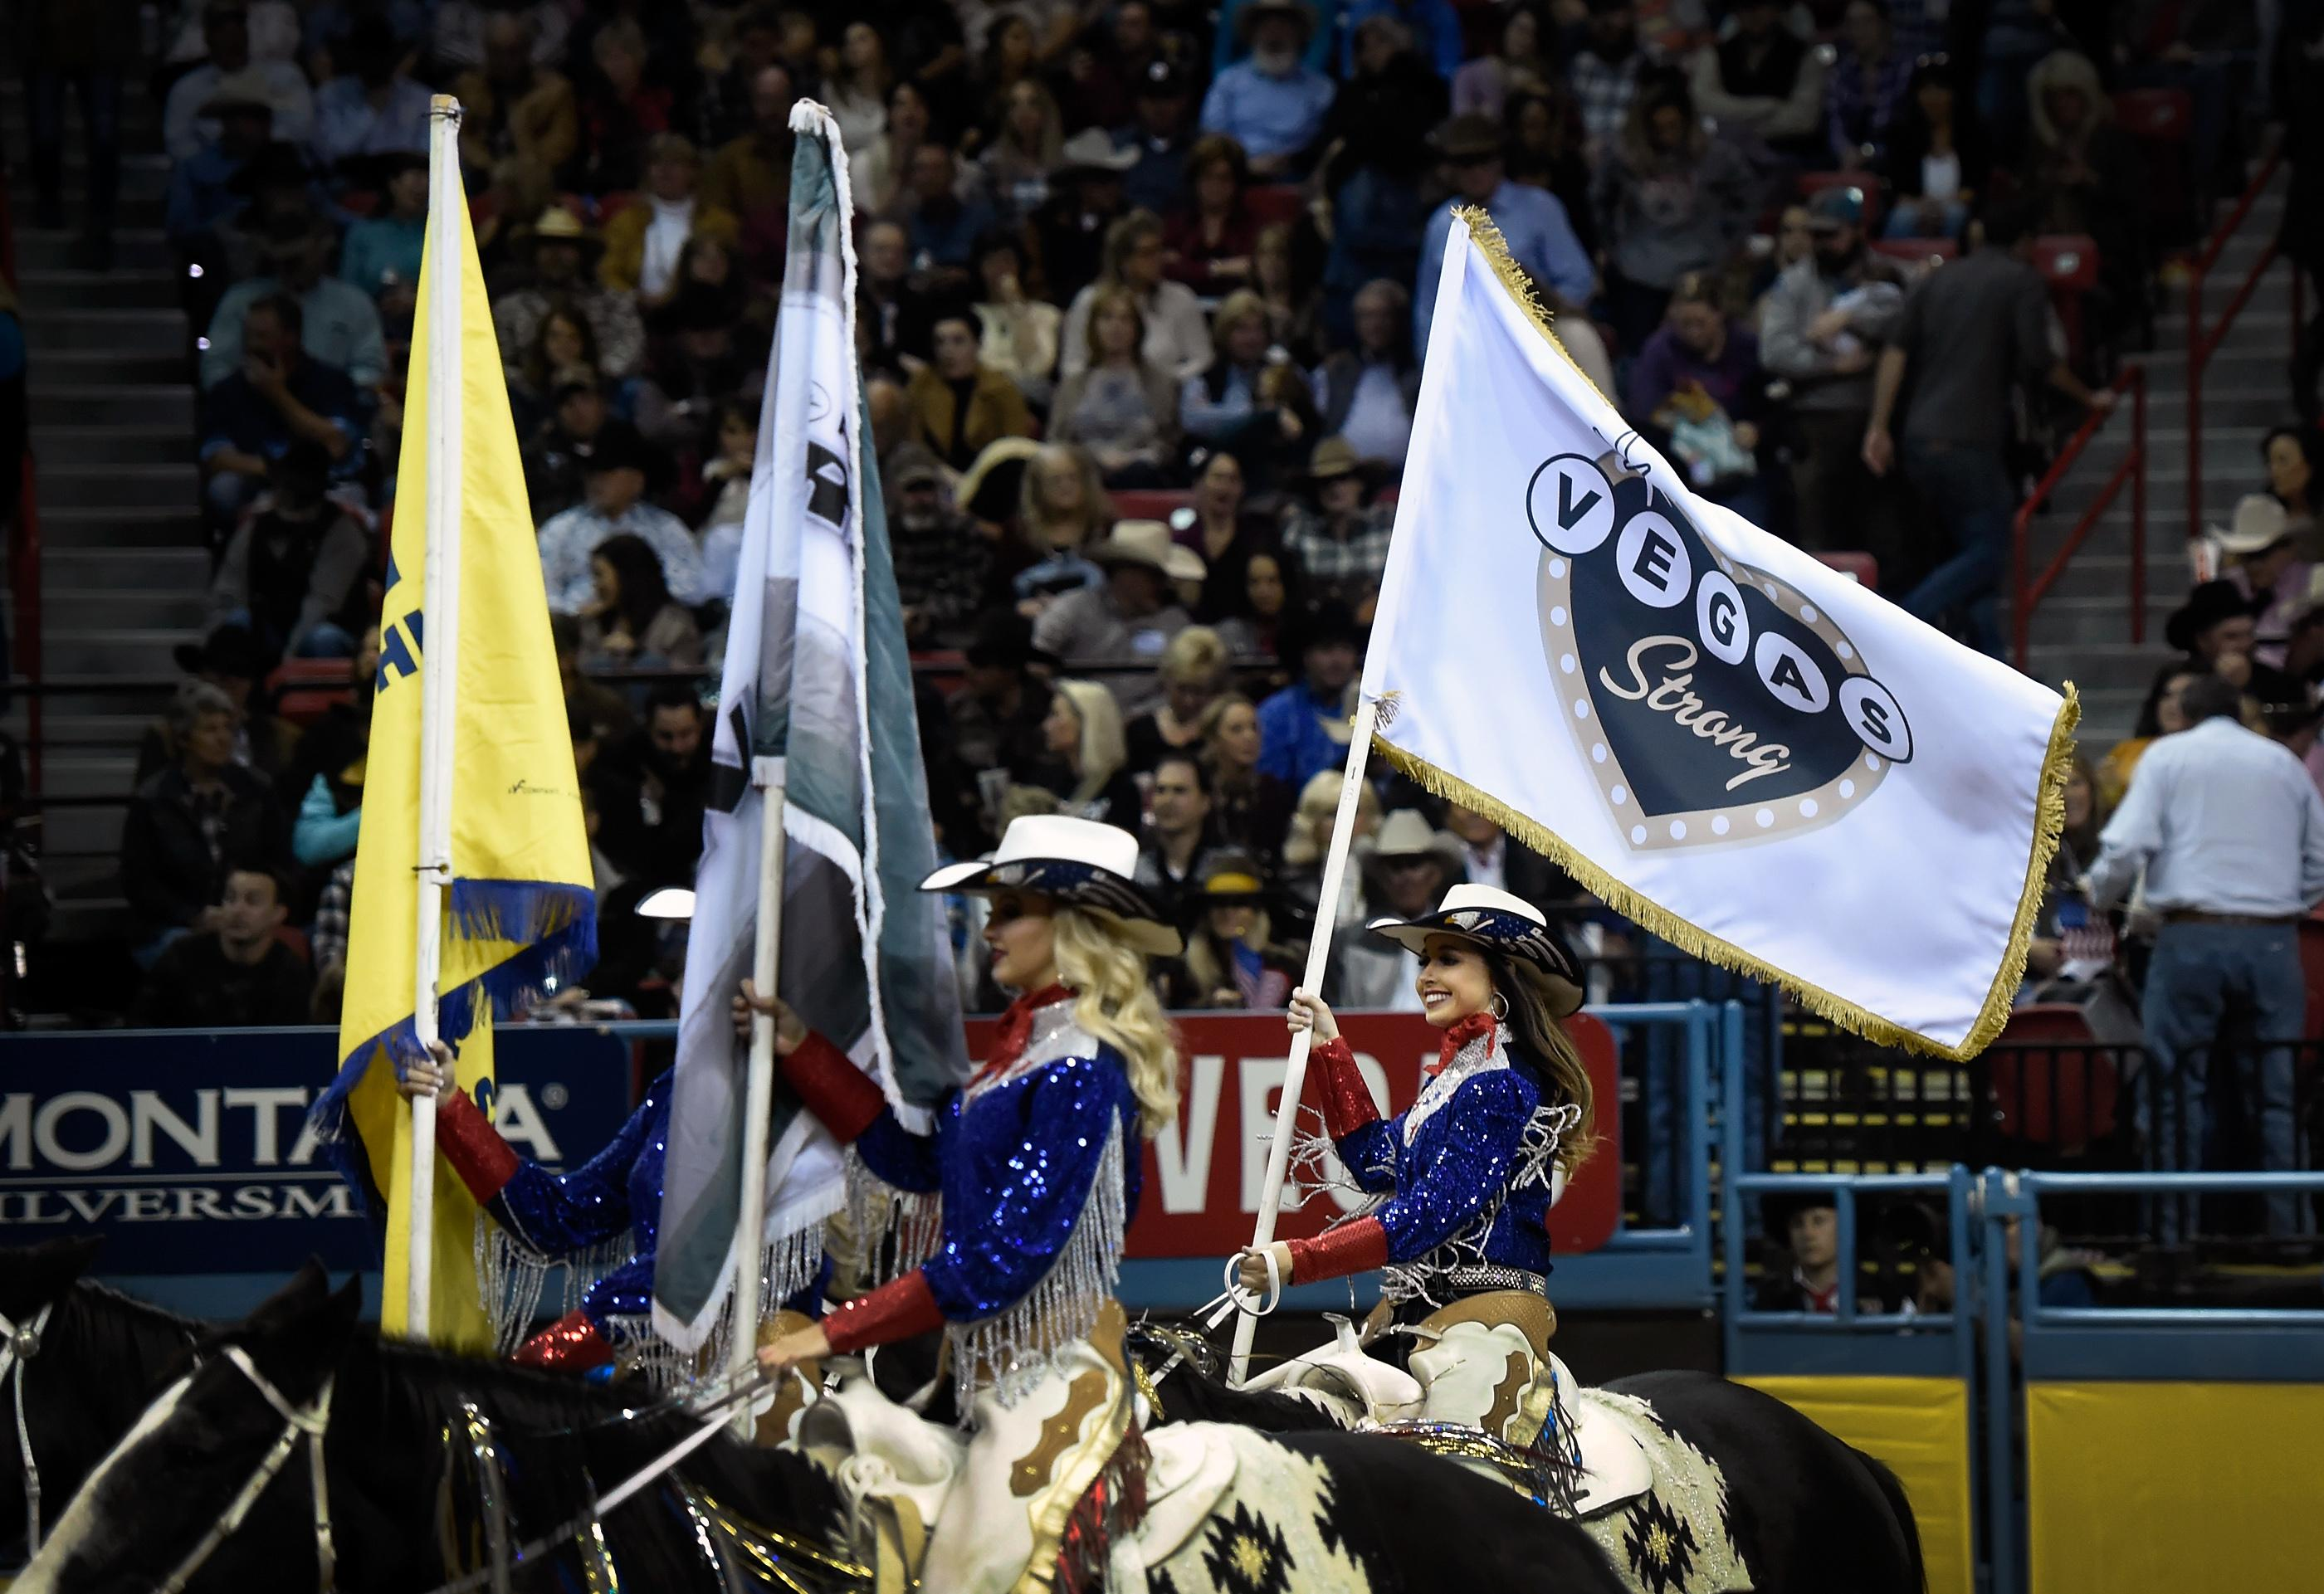 A Vegas Strong flag is carried into the arena during the seventh go-round of the National Finals Rodeo Wednesday, Dec. 13, 2017, in Las Vegas. CREDIT: David Becker/Las Vegas News Bureau